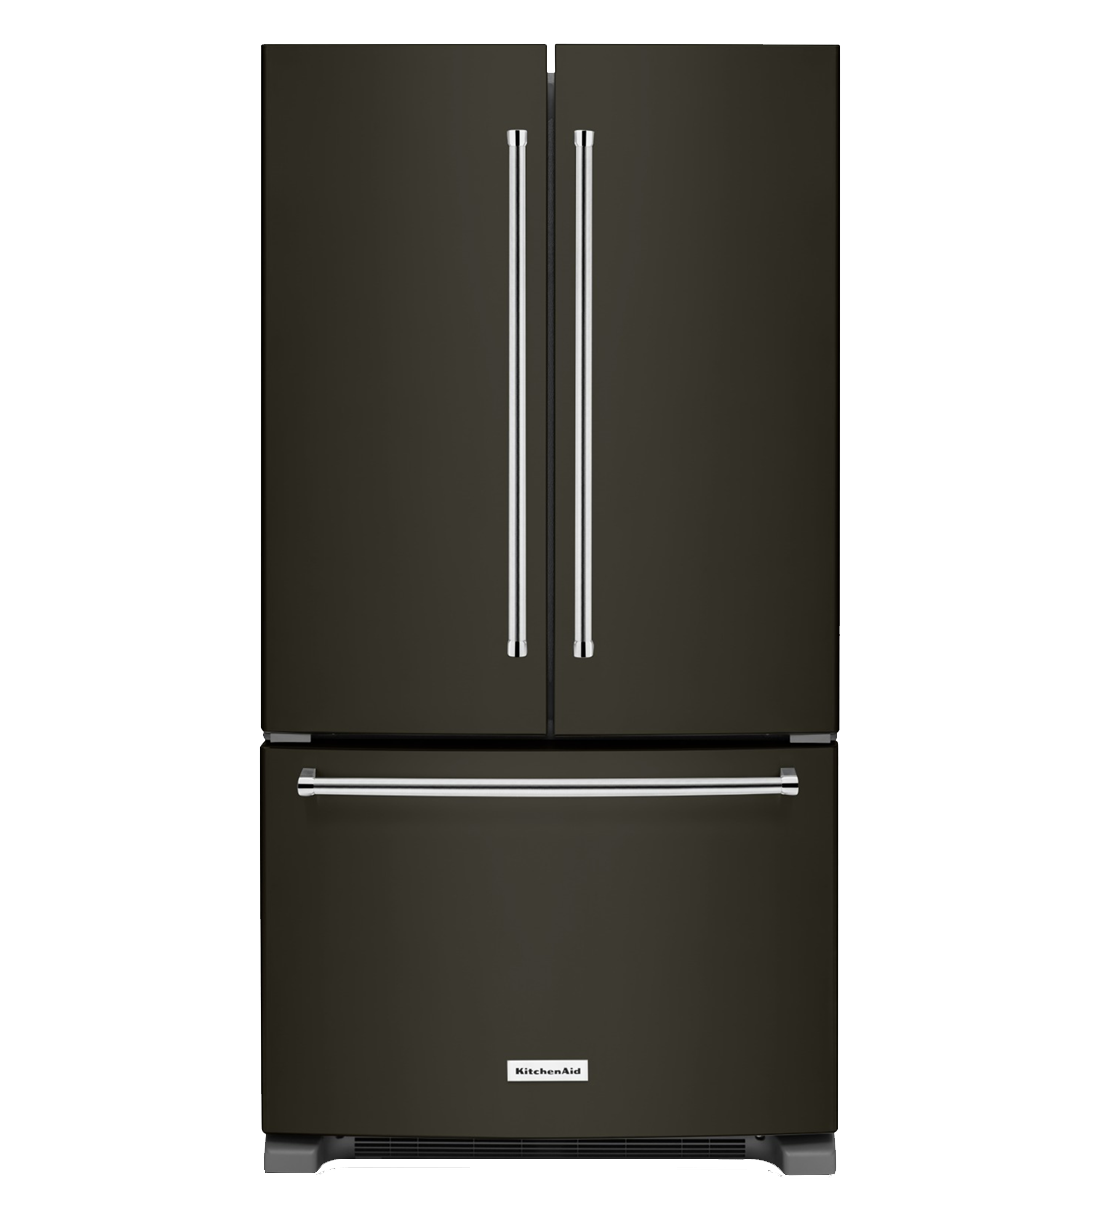 Kitchen Aid Refrigerator in Black Stainless Steel color showcased by Corbeil Electro Store